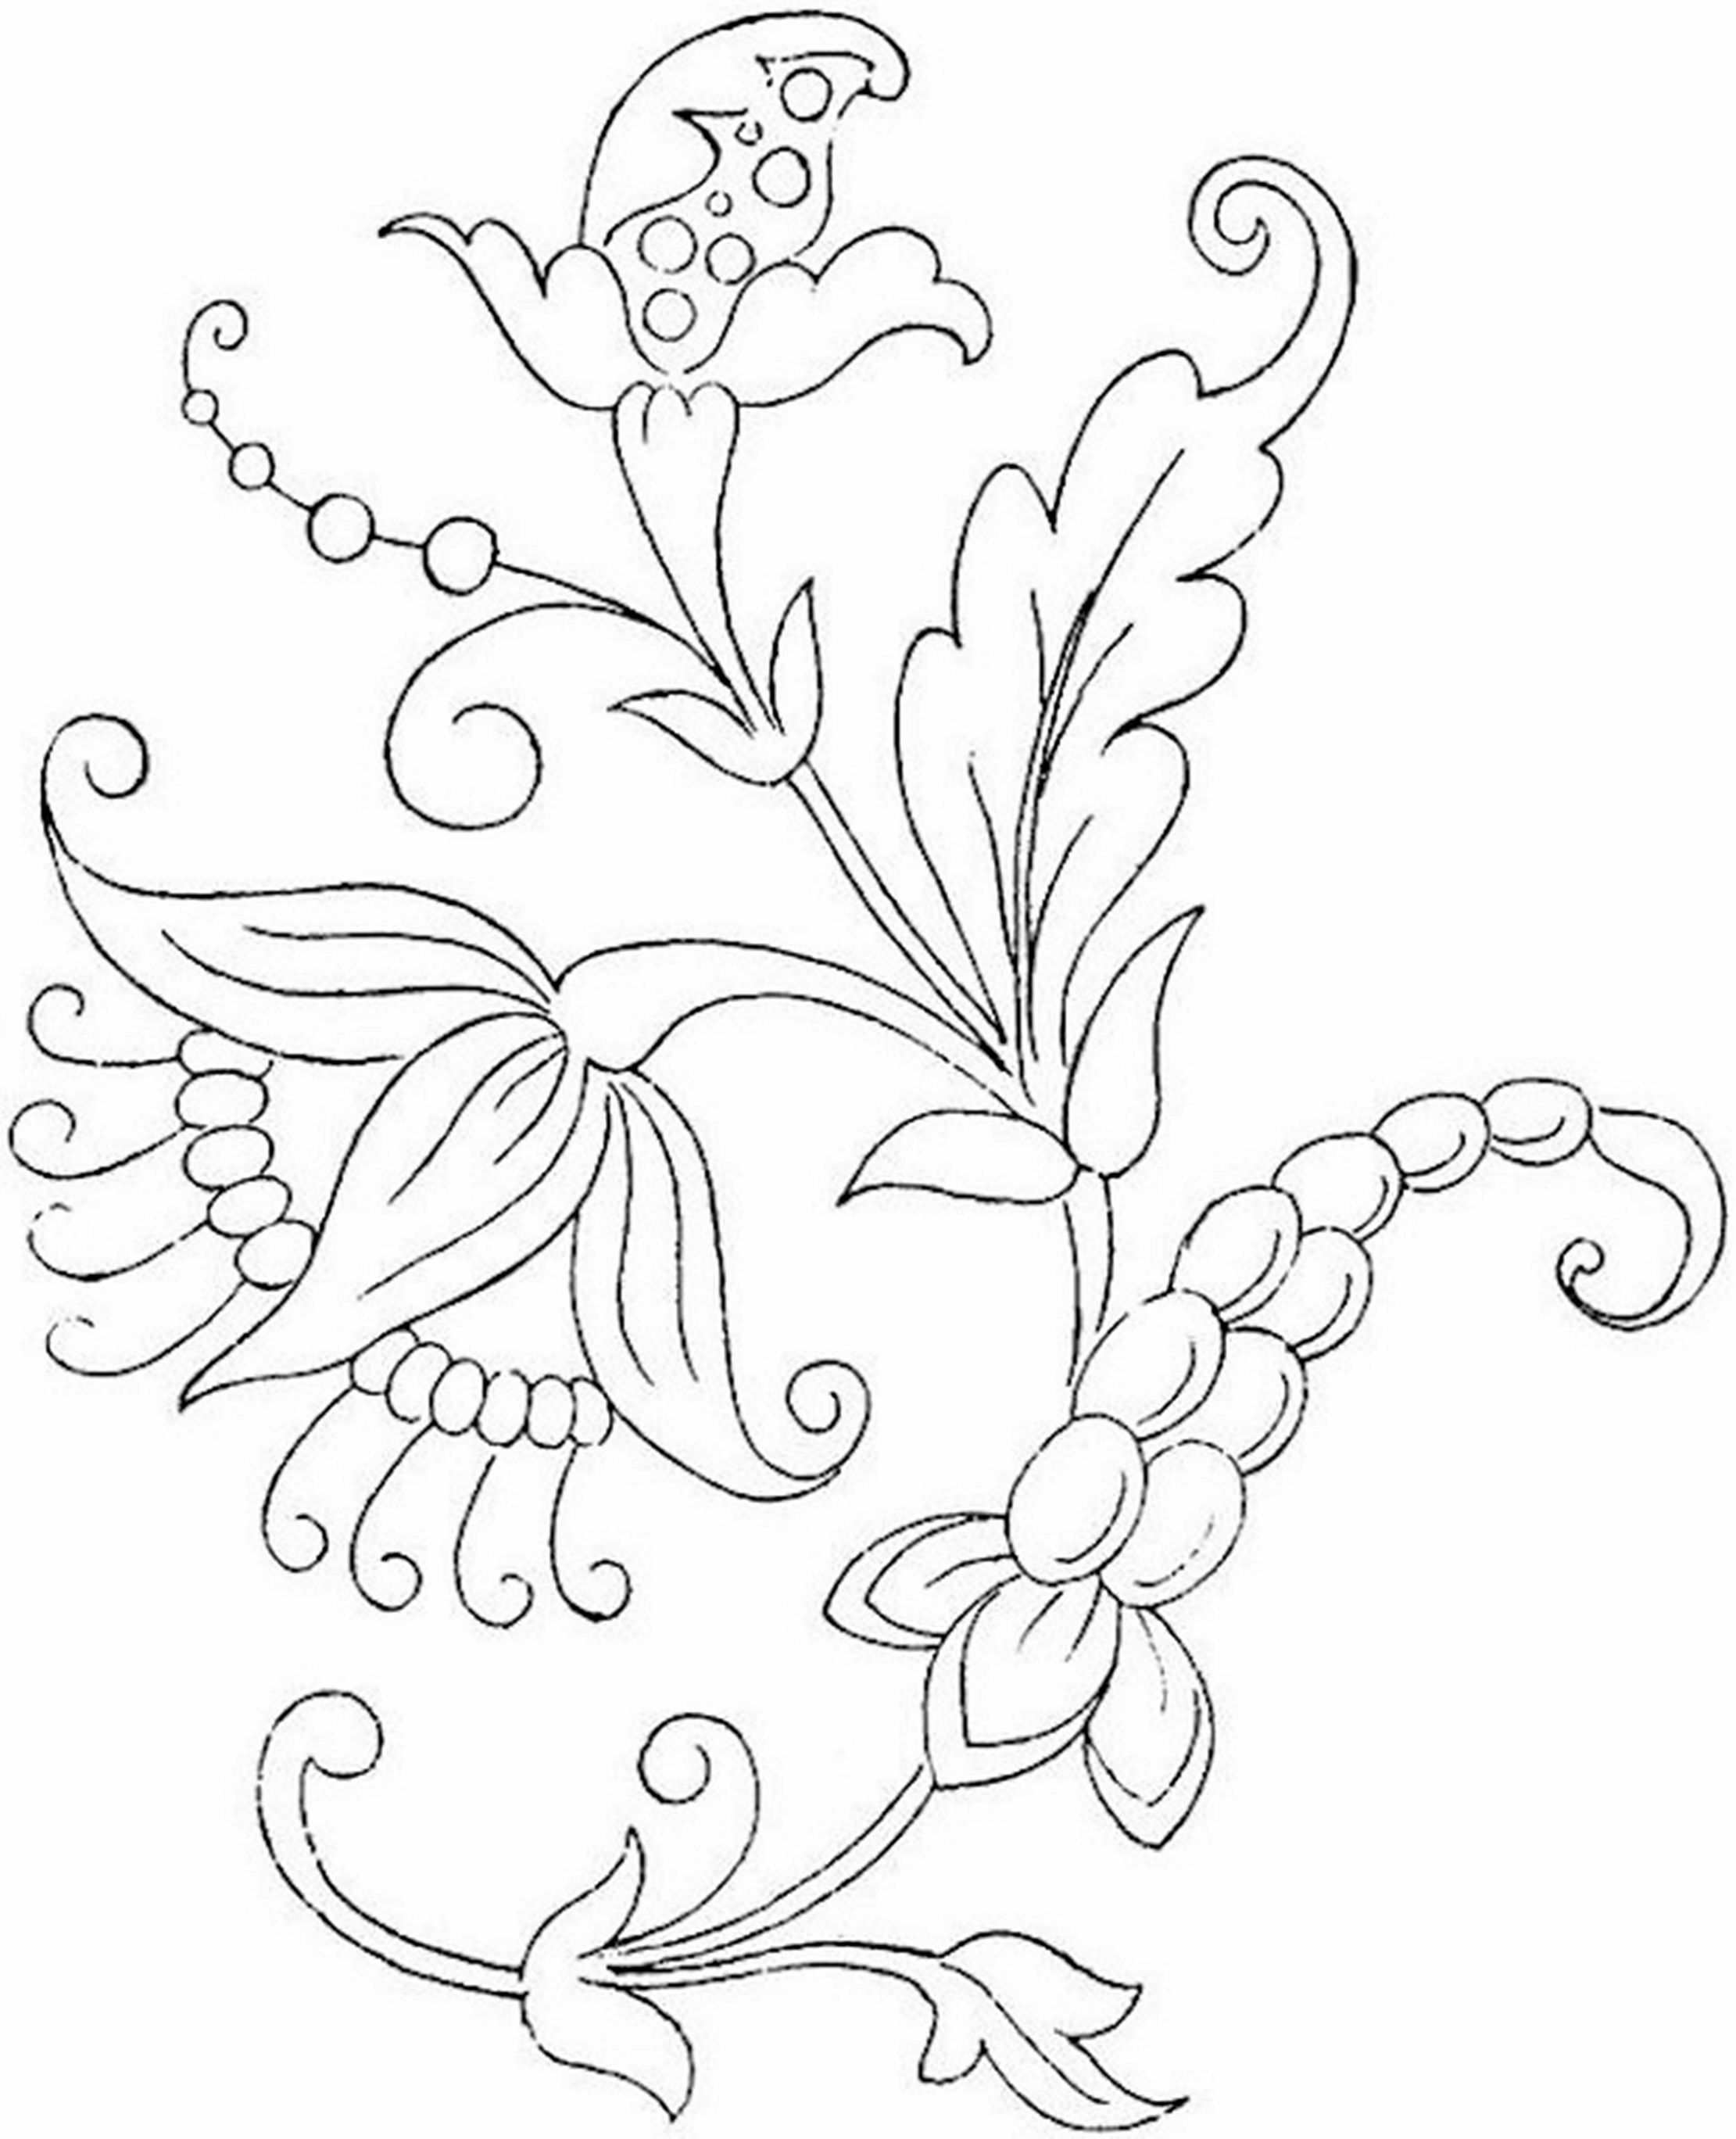 pictures of flowers for coloring free printable flower coloring pages for kids best of coloring for pictures flowers 1 1